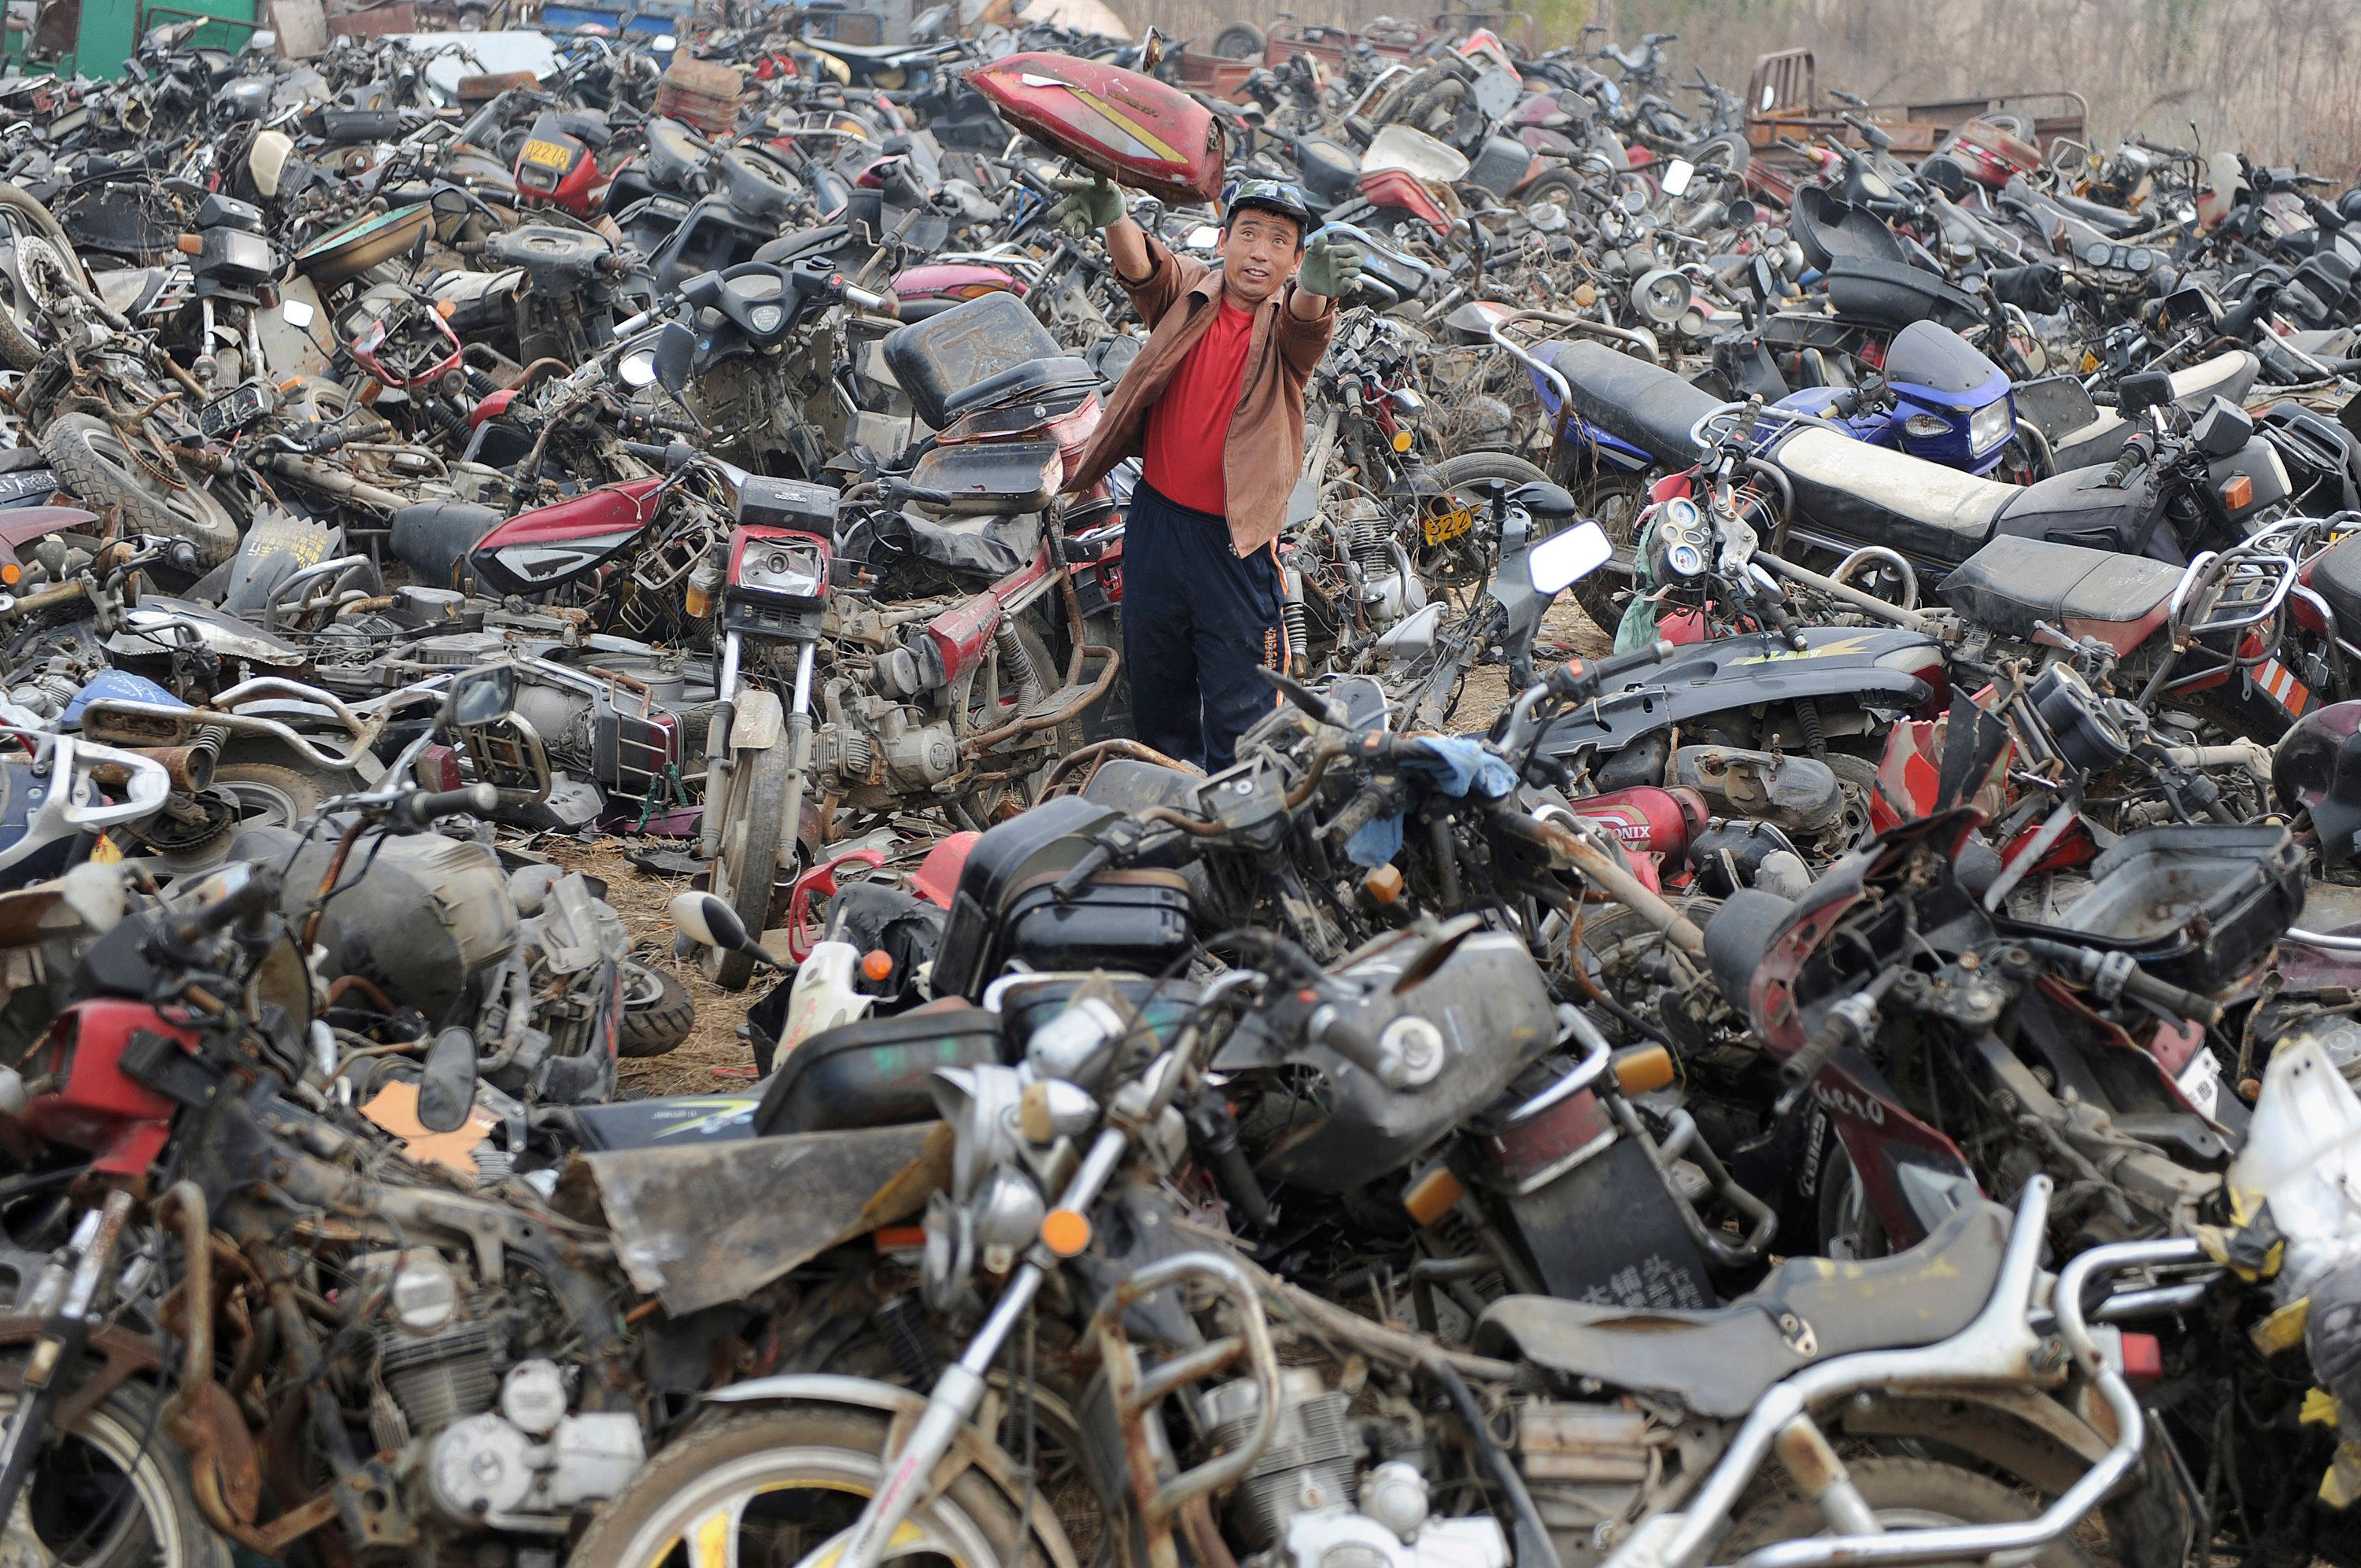 A laborer disassembles motorcycles at a recycling factory in Hefei, Anhui province, China in